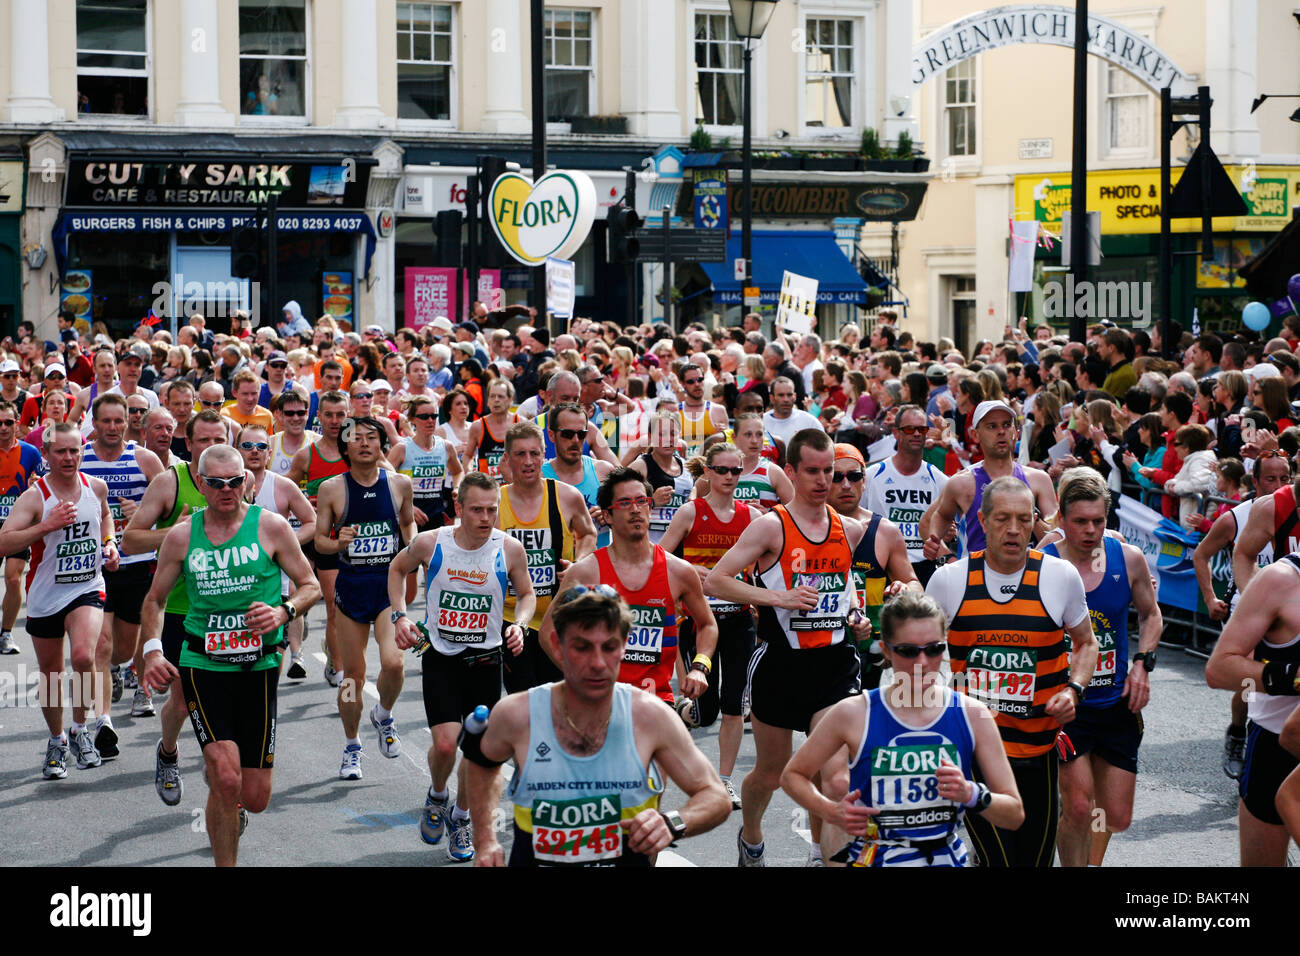 The 2009 London Marathon in Greenwich. - Stock Image